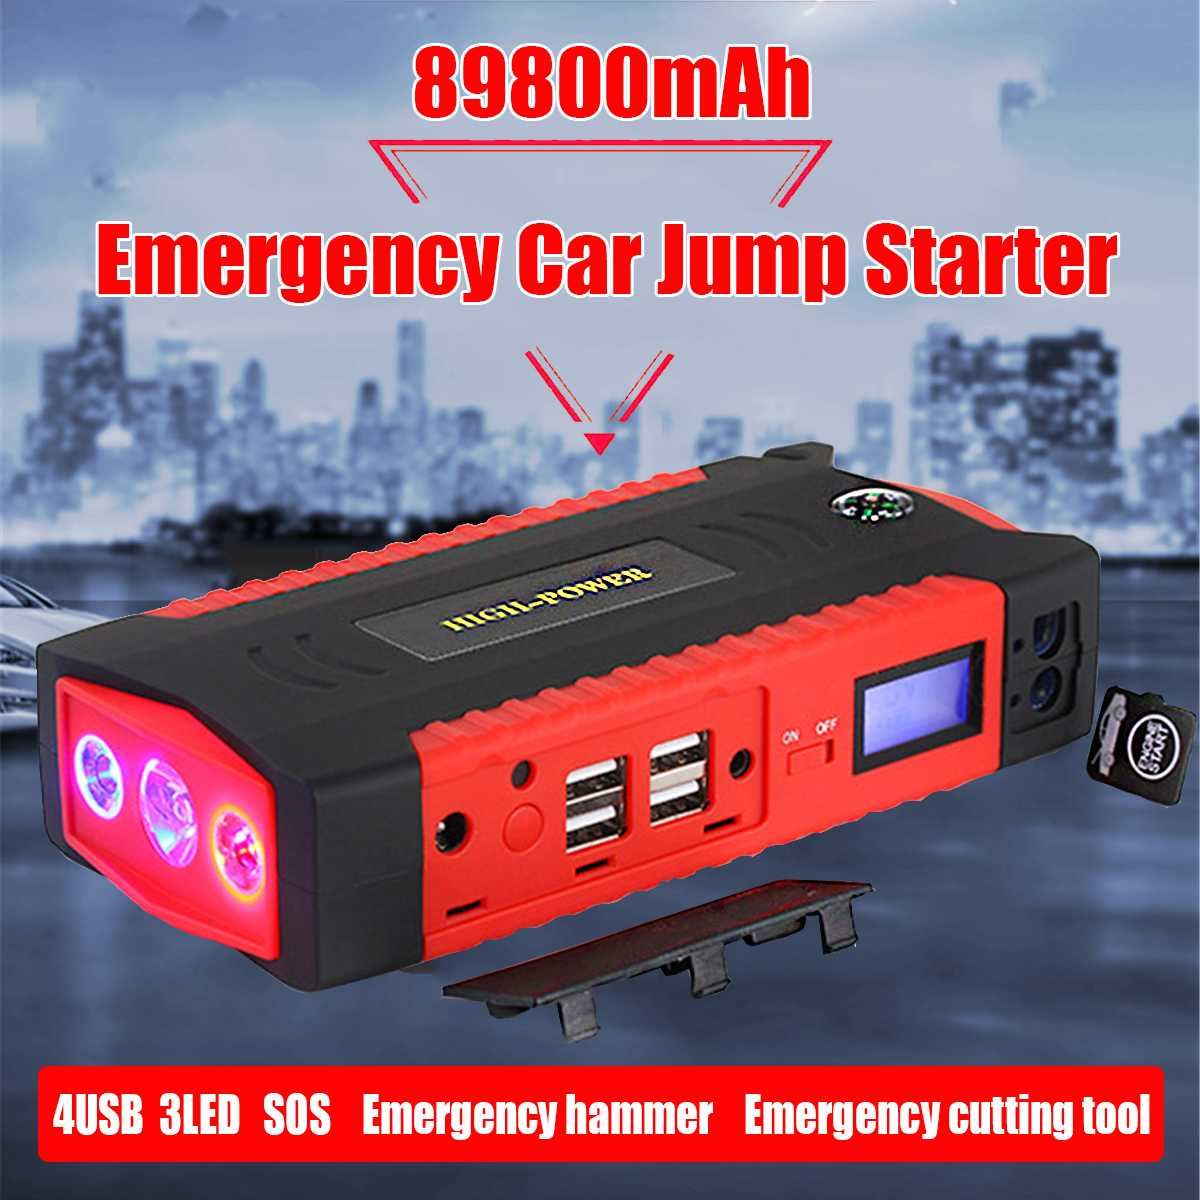 89800mAh Car Jump Starter Portable Power Bank 4 USB Battery Booster Charger 12V Starting Device Petrol Diesels Car Starter SOS89800mAh Car Jump Starter Portable Power Bank 4 USB Battery Booster Charger 12V Starting Device Petrol Diesels Car Starter SOS